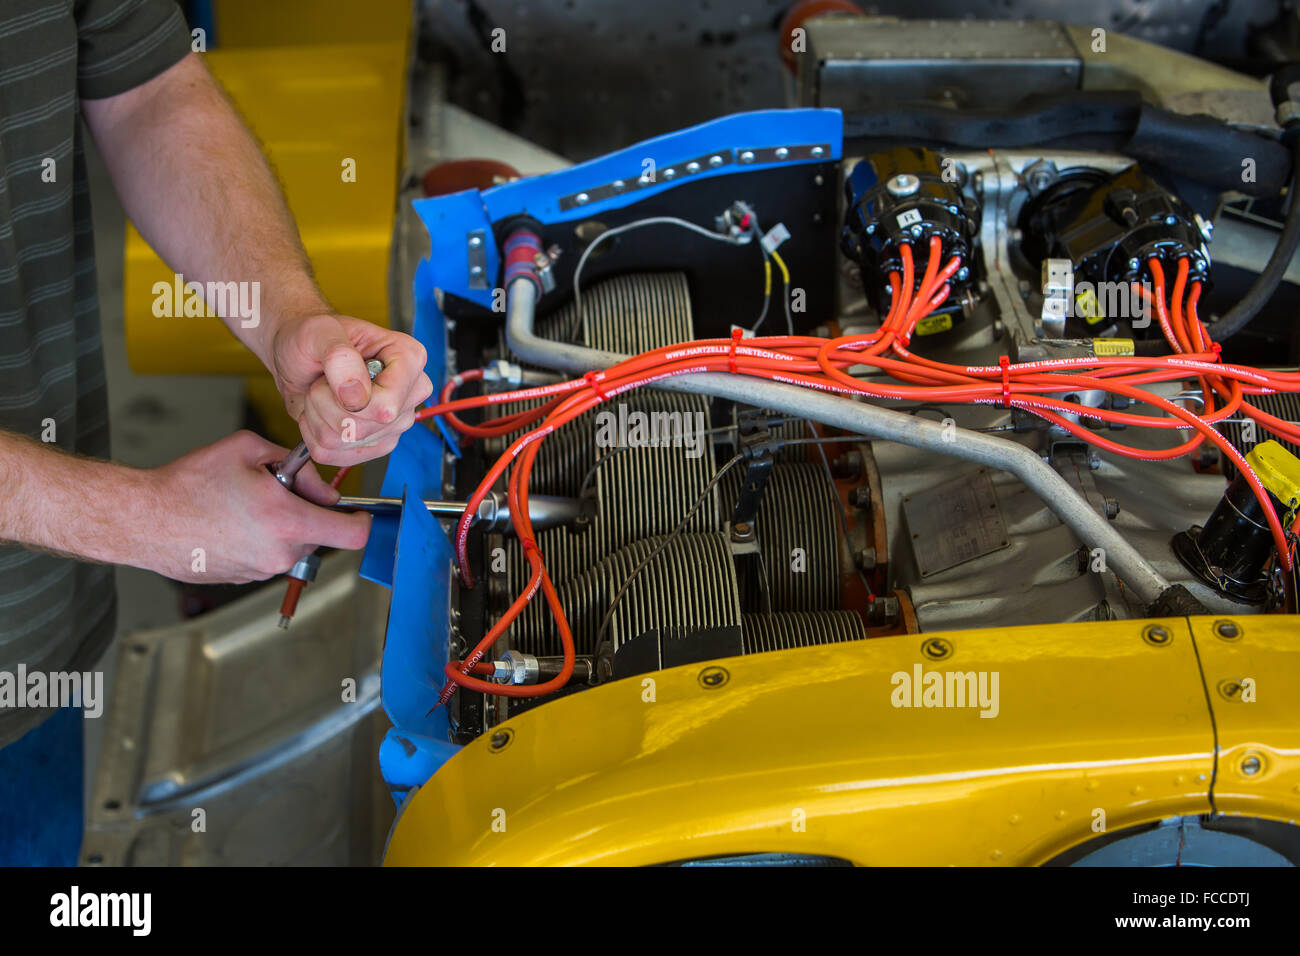 Engine Wiring Stock Photos Images Alamy Aircraft Aviation Mechanic Working On Airplane Image